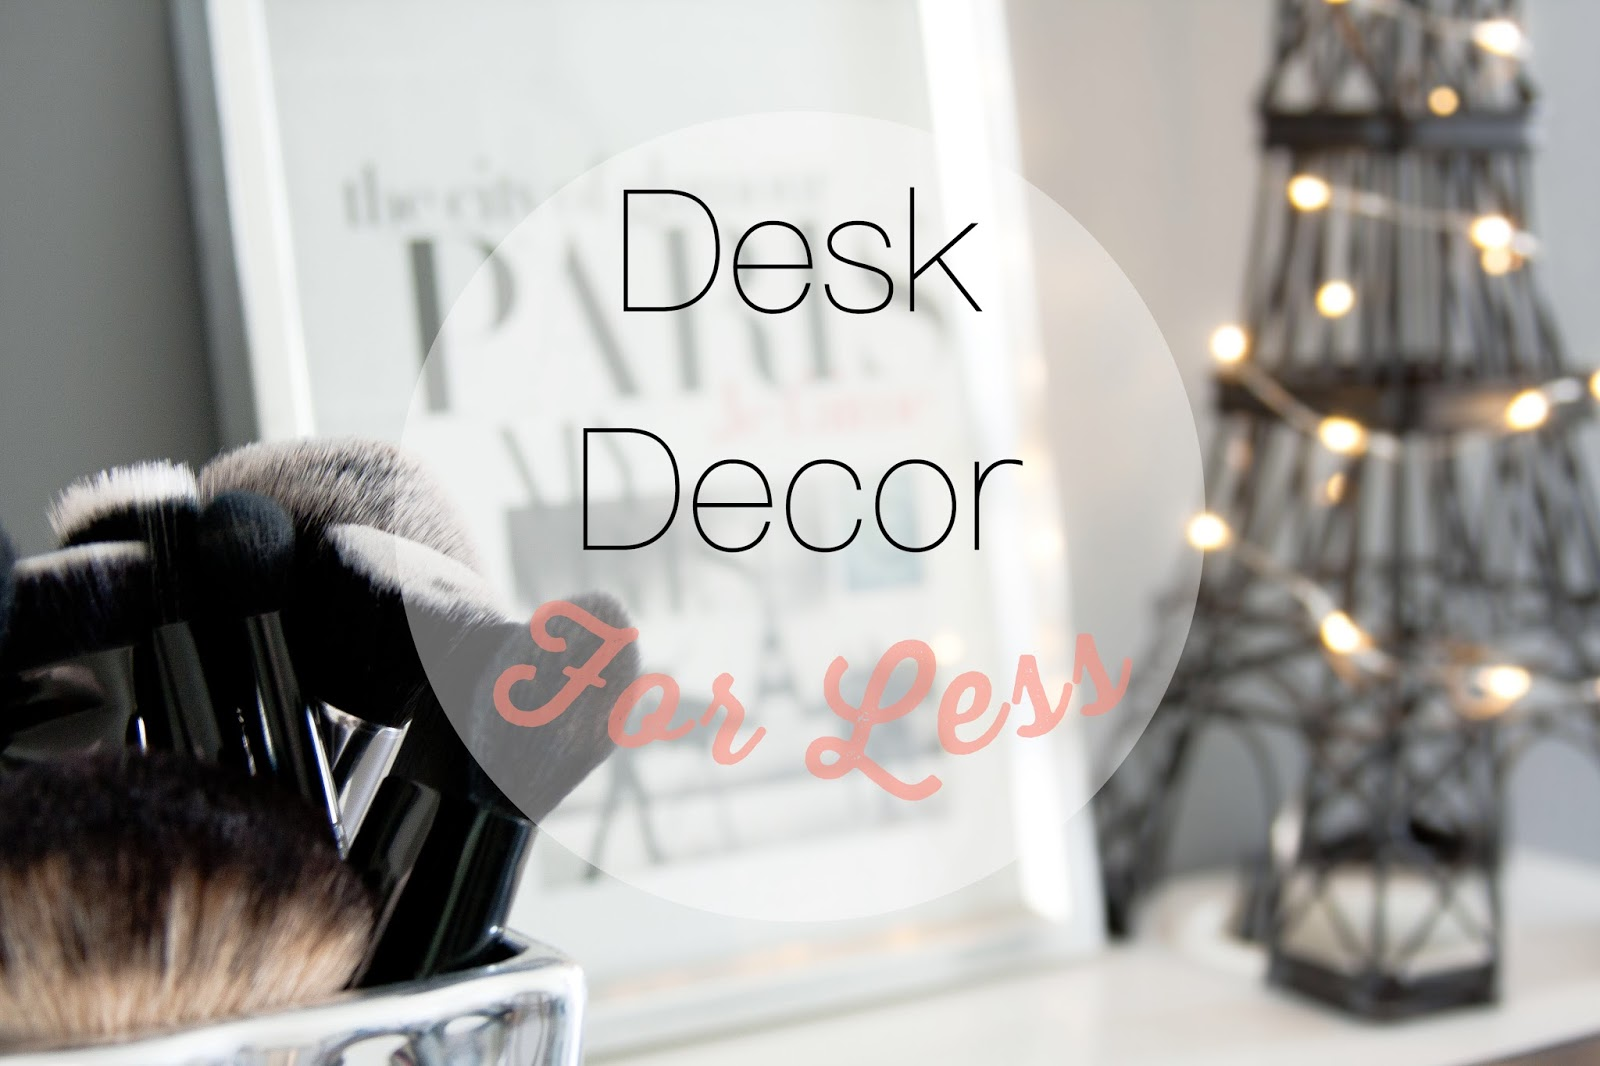 Desk Decor using what you have to create a productive and beautiful work space!